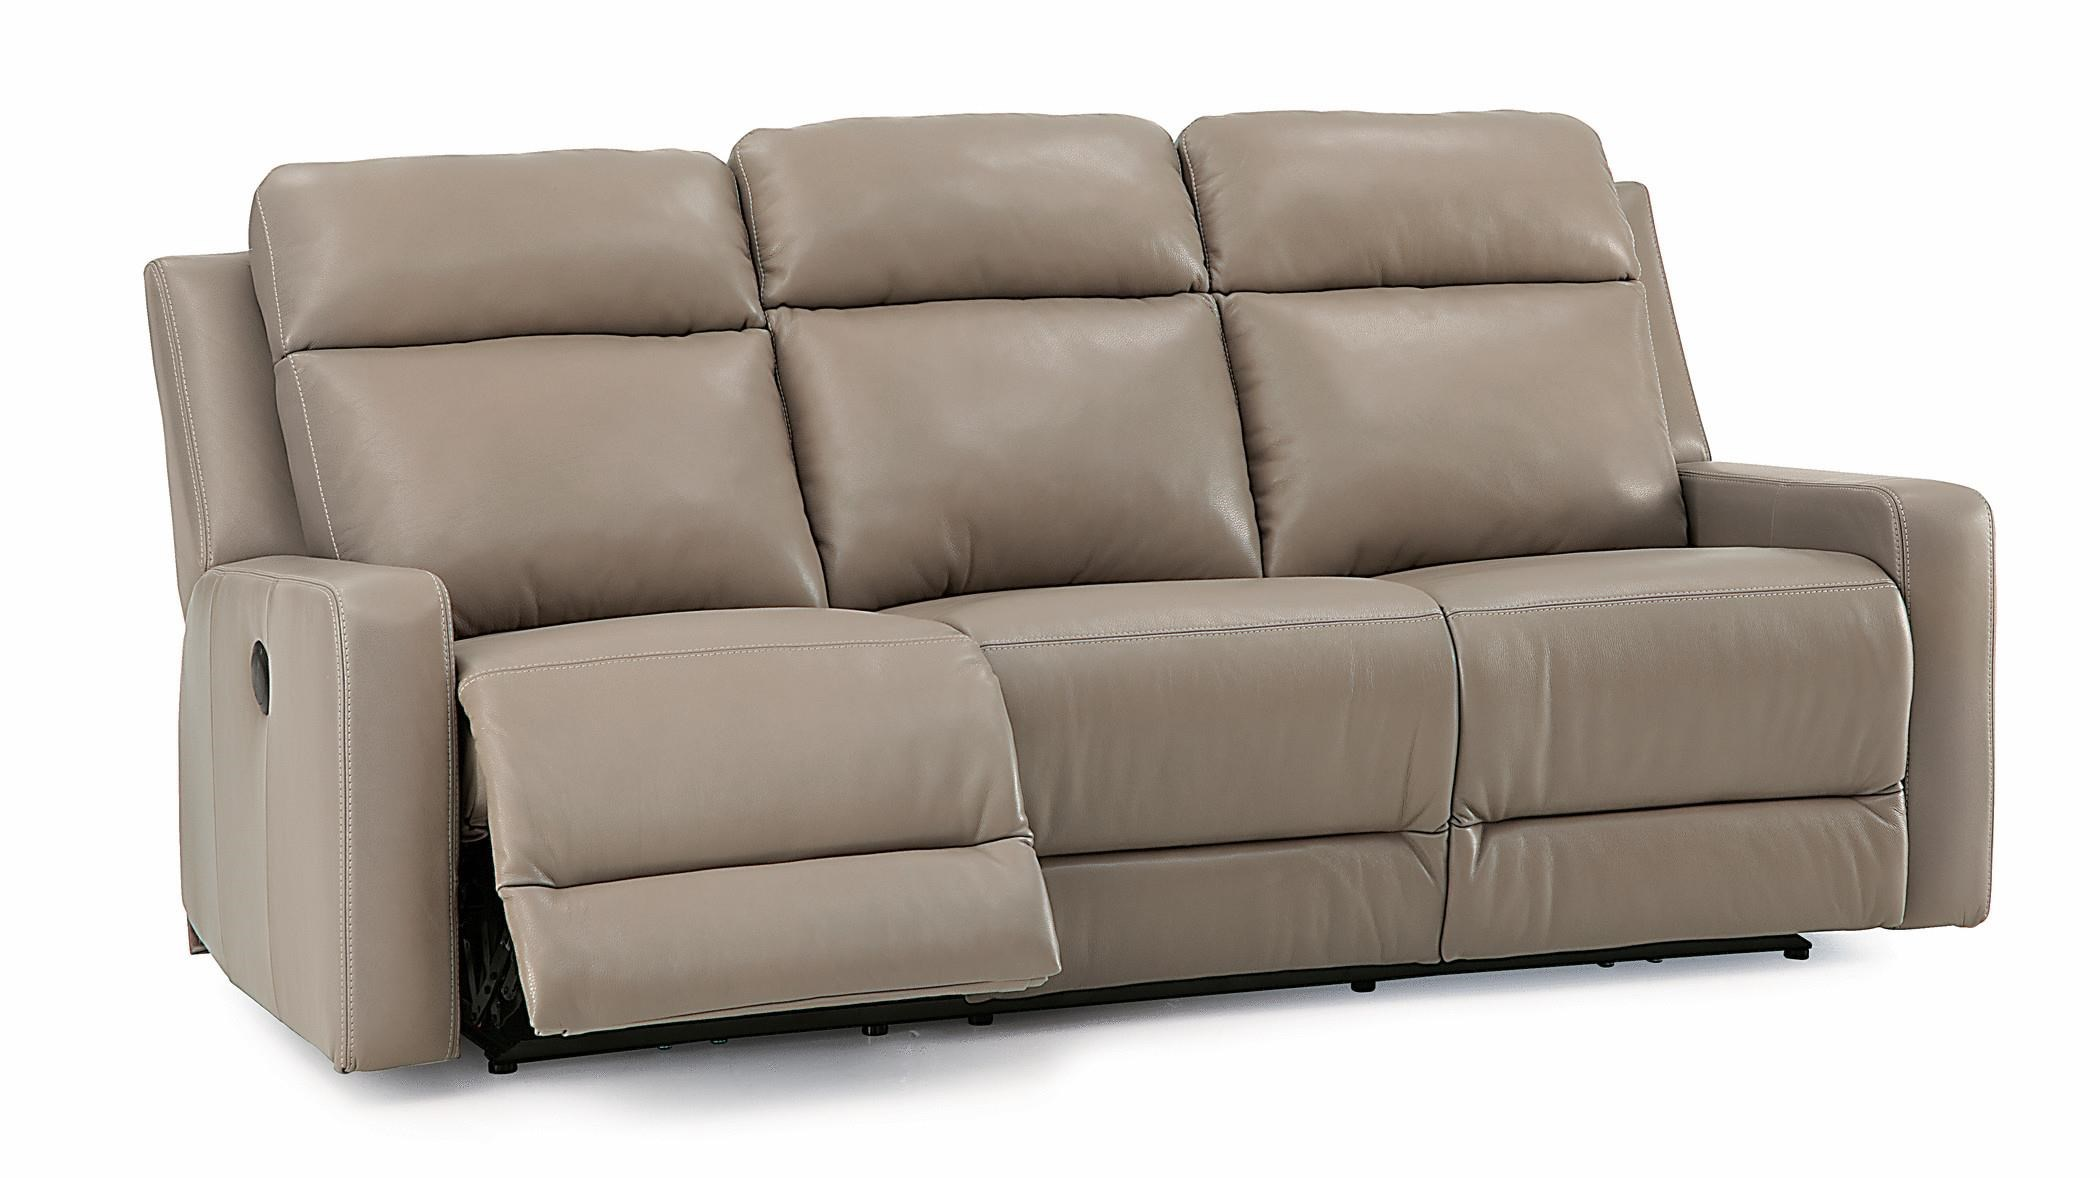 Lazy Boy Sectionals >> Palliser Sofas Palliser Sofas And Sectionals - TheSofa